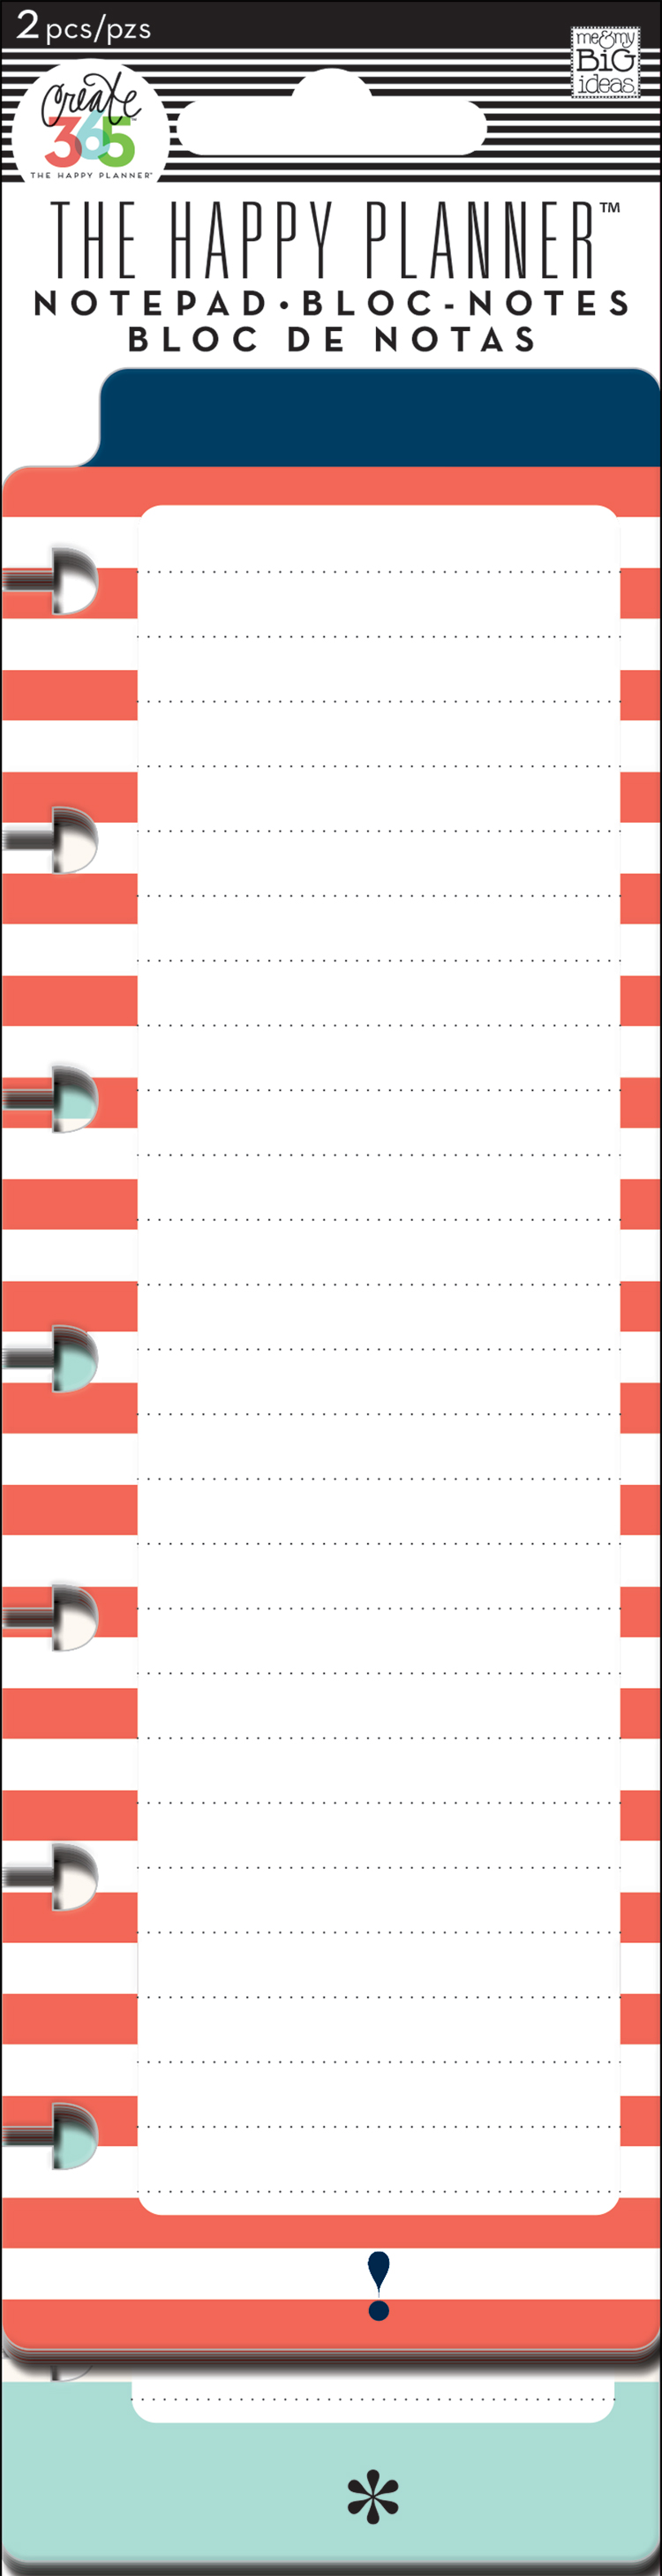 'Red & Teal' notepads for The Happy Planner™   me & my BIG ideas.jpg